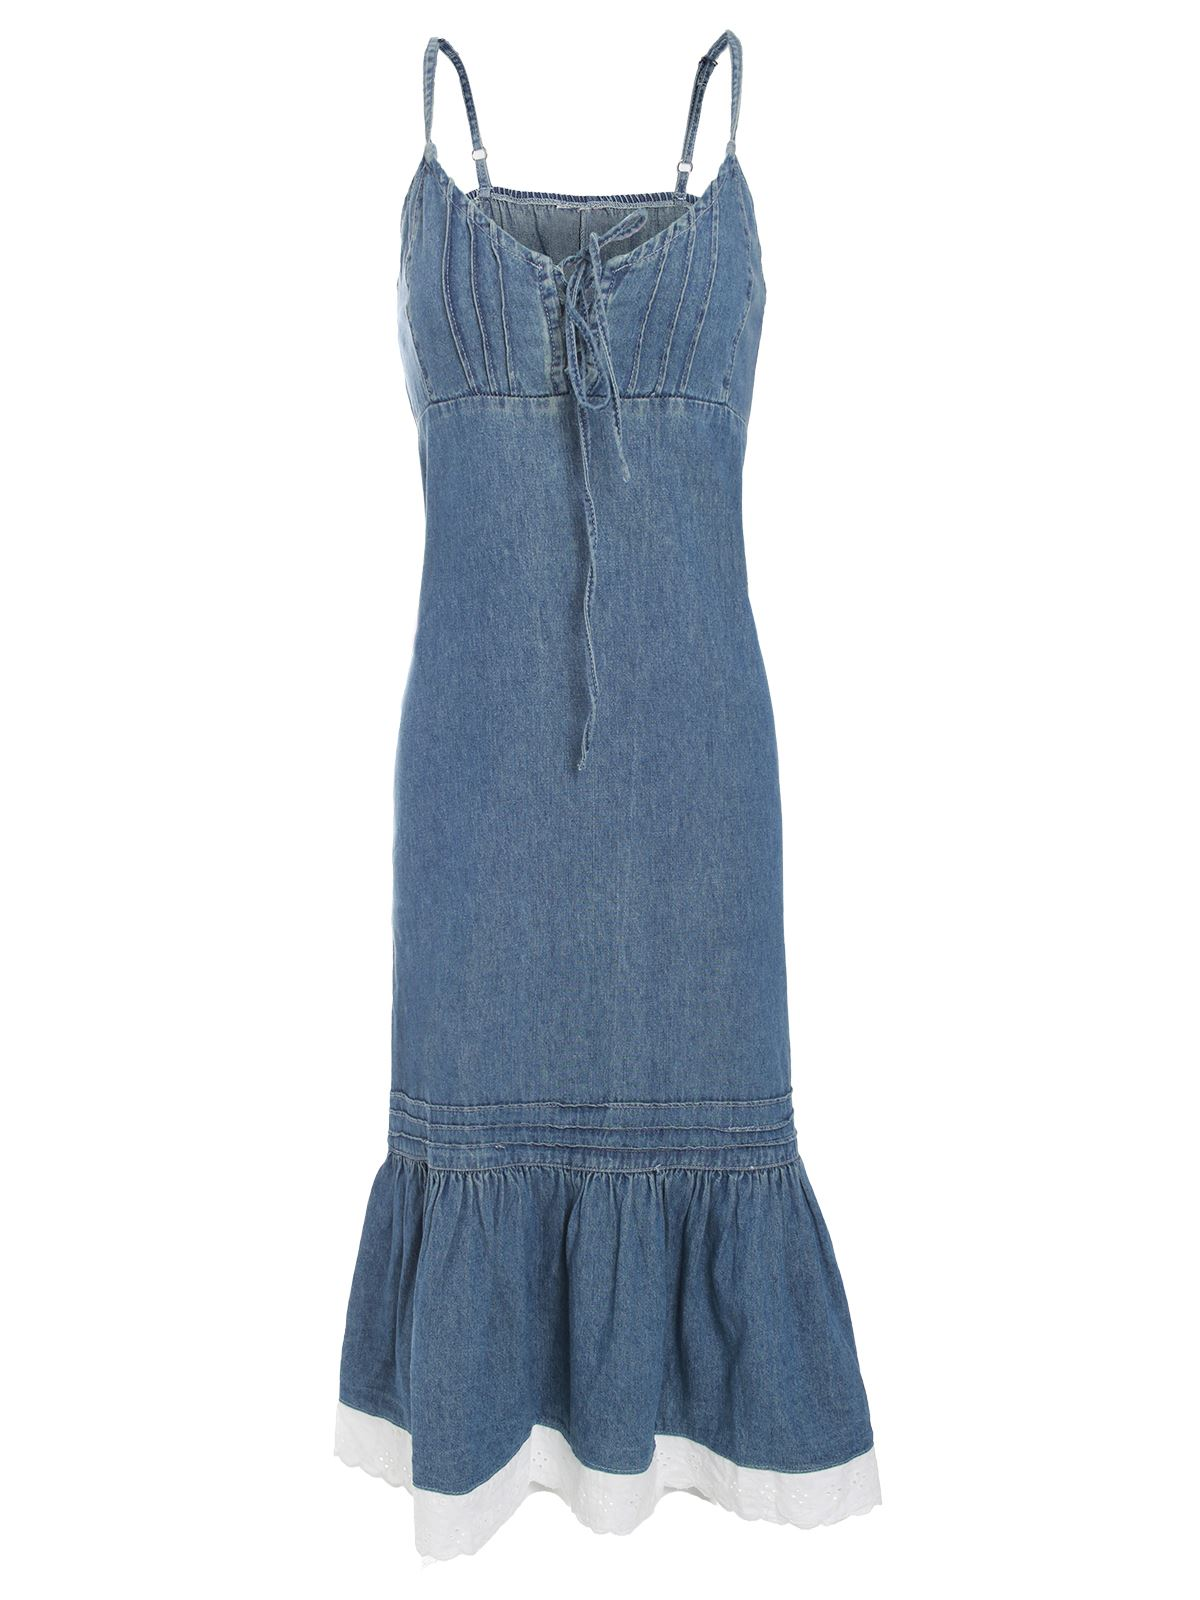 New Blue Jean Dresses For WomenBuy Cheap Blue Jean Dresses For Women